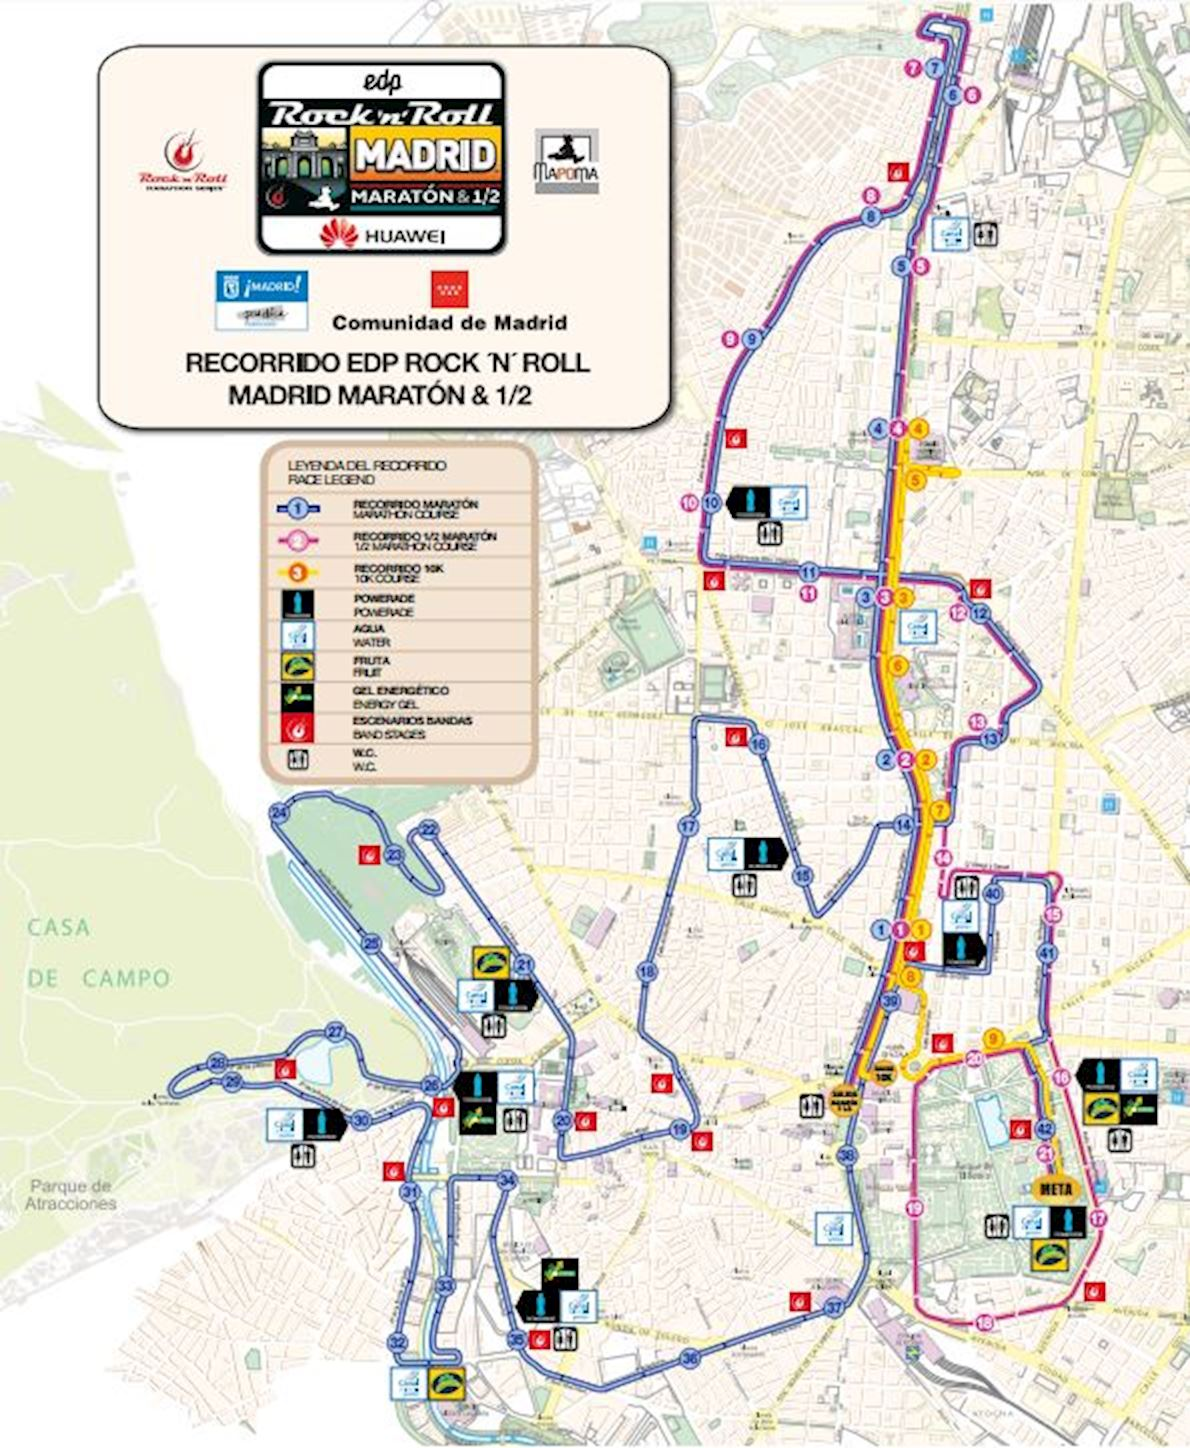 Rock 'n' Roll Madrid Marathon & 1/2 Route Map